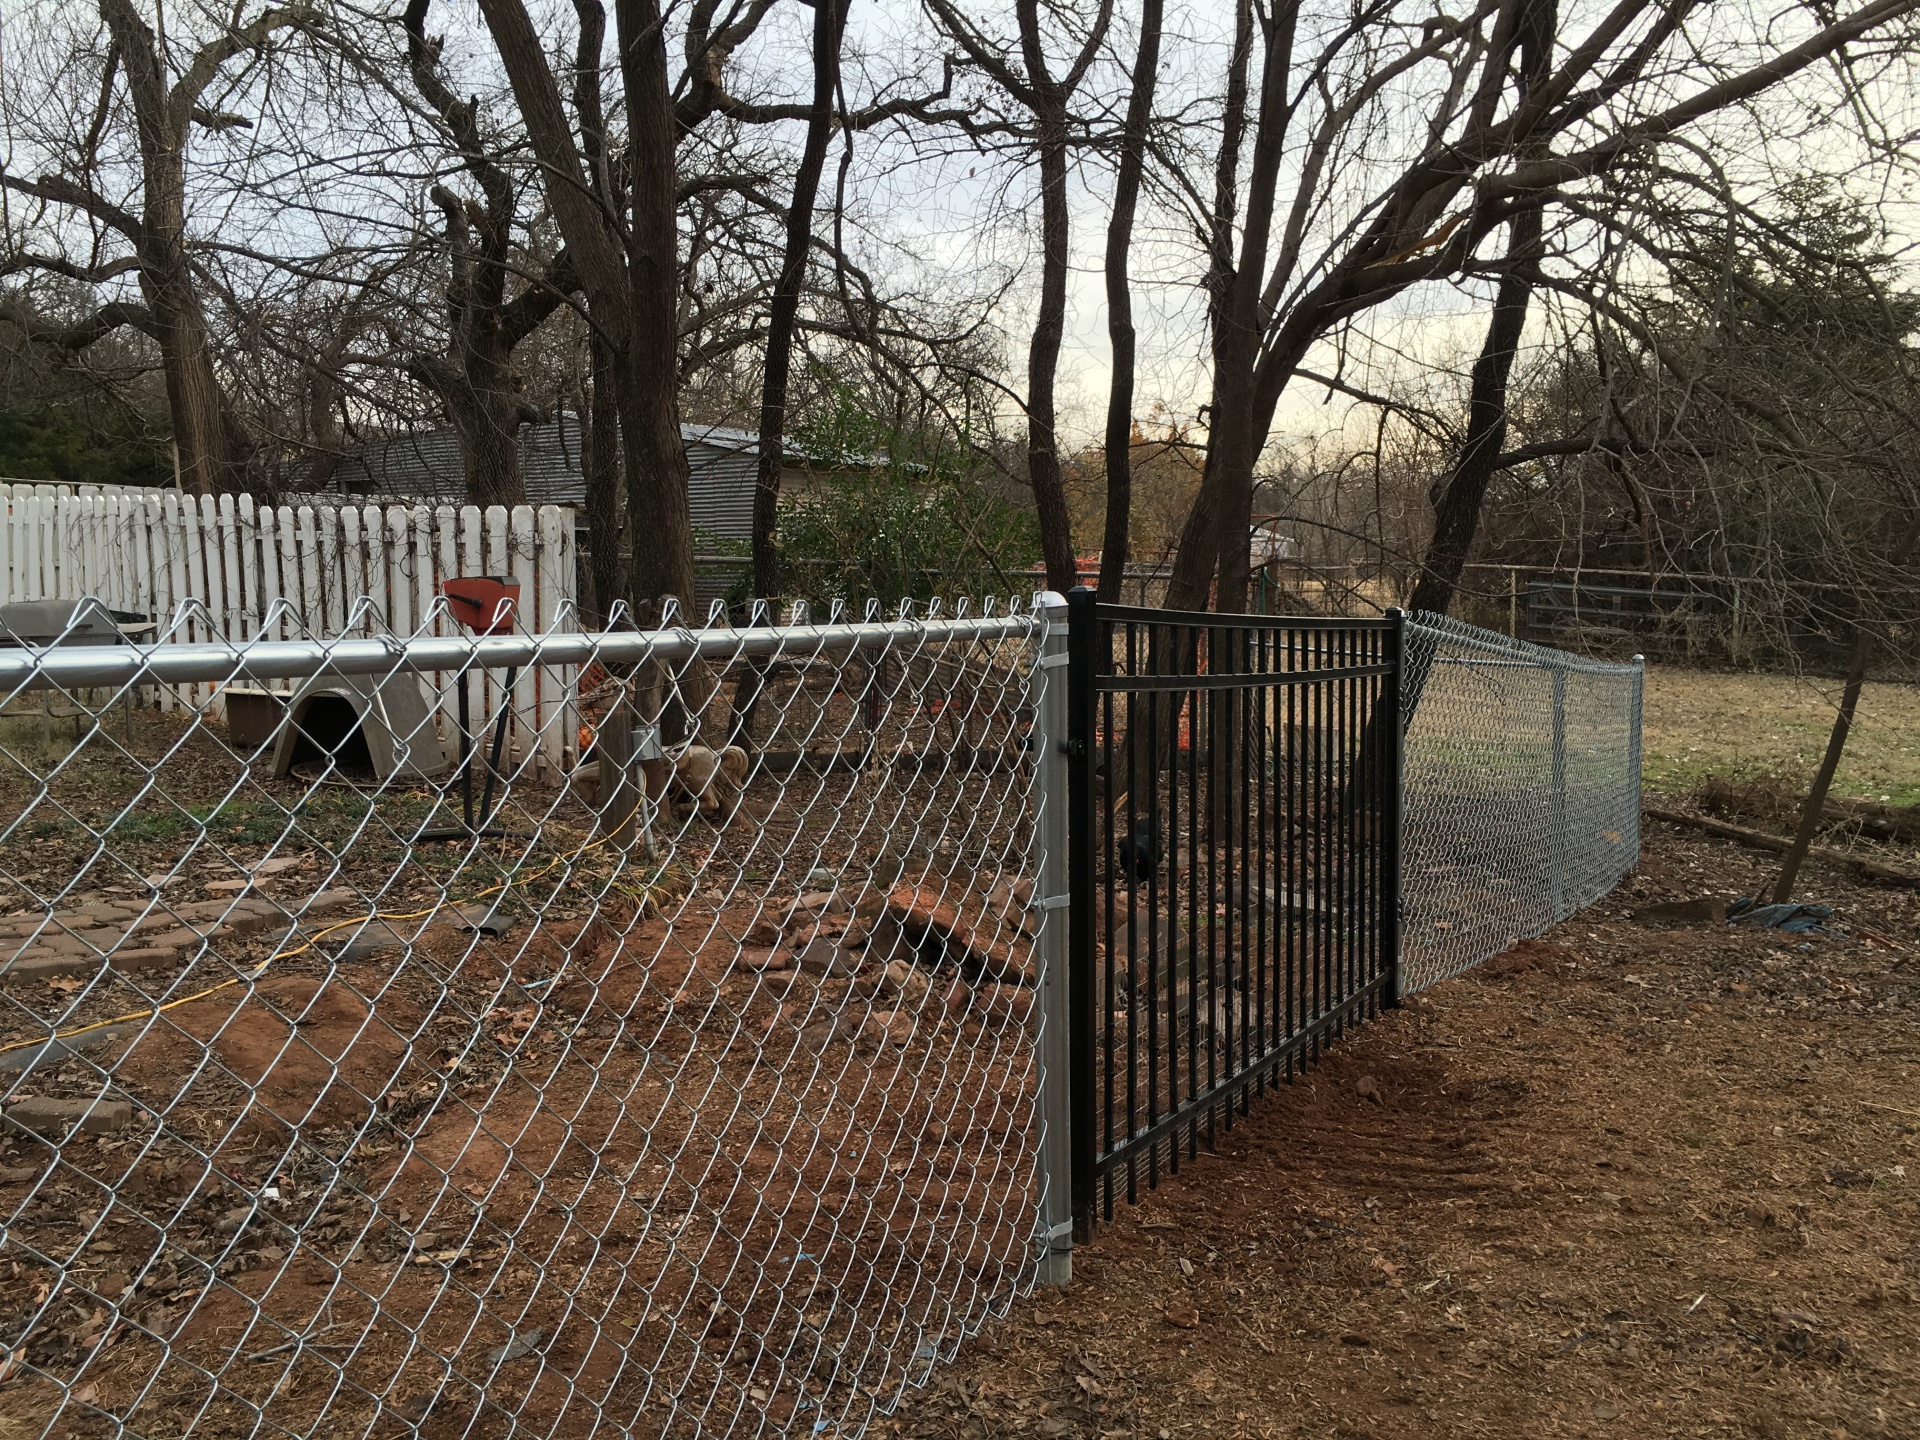 4 ft Residential Chain Link Fence with Iron Montage Gate Edmond Oklahoma Fence Gate Company